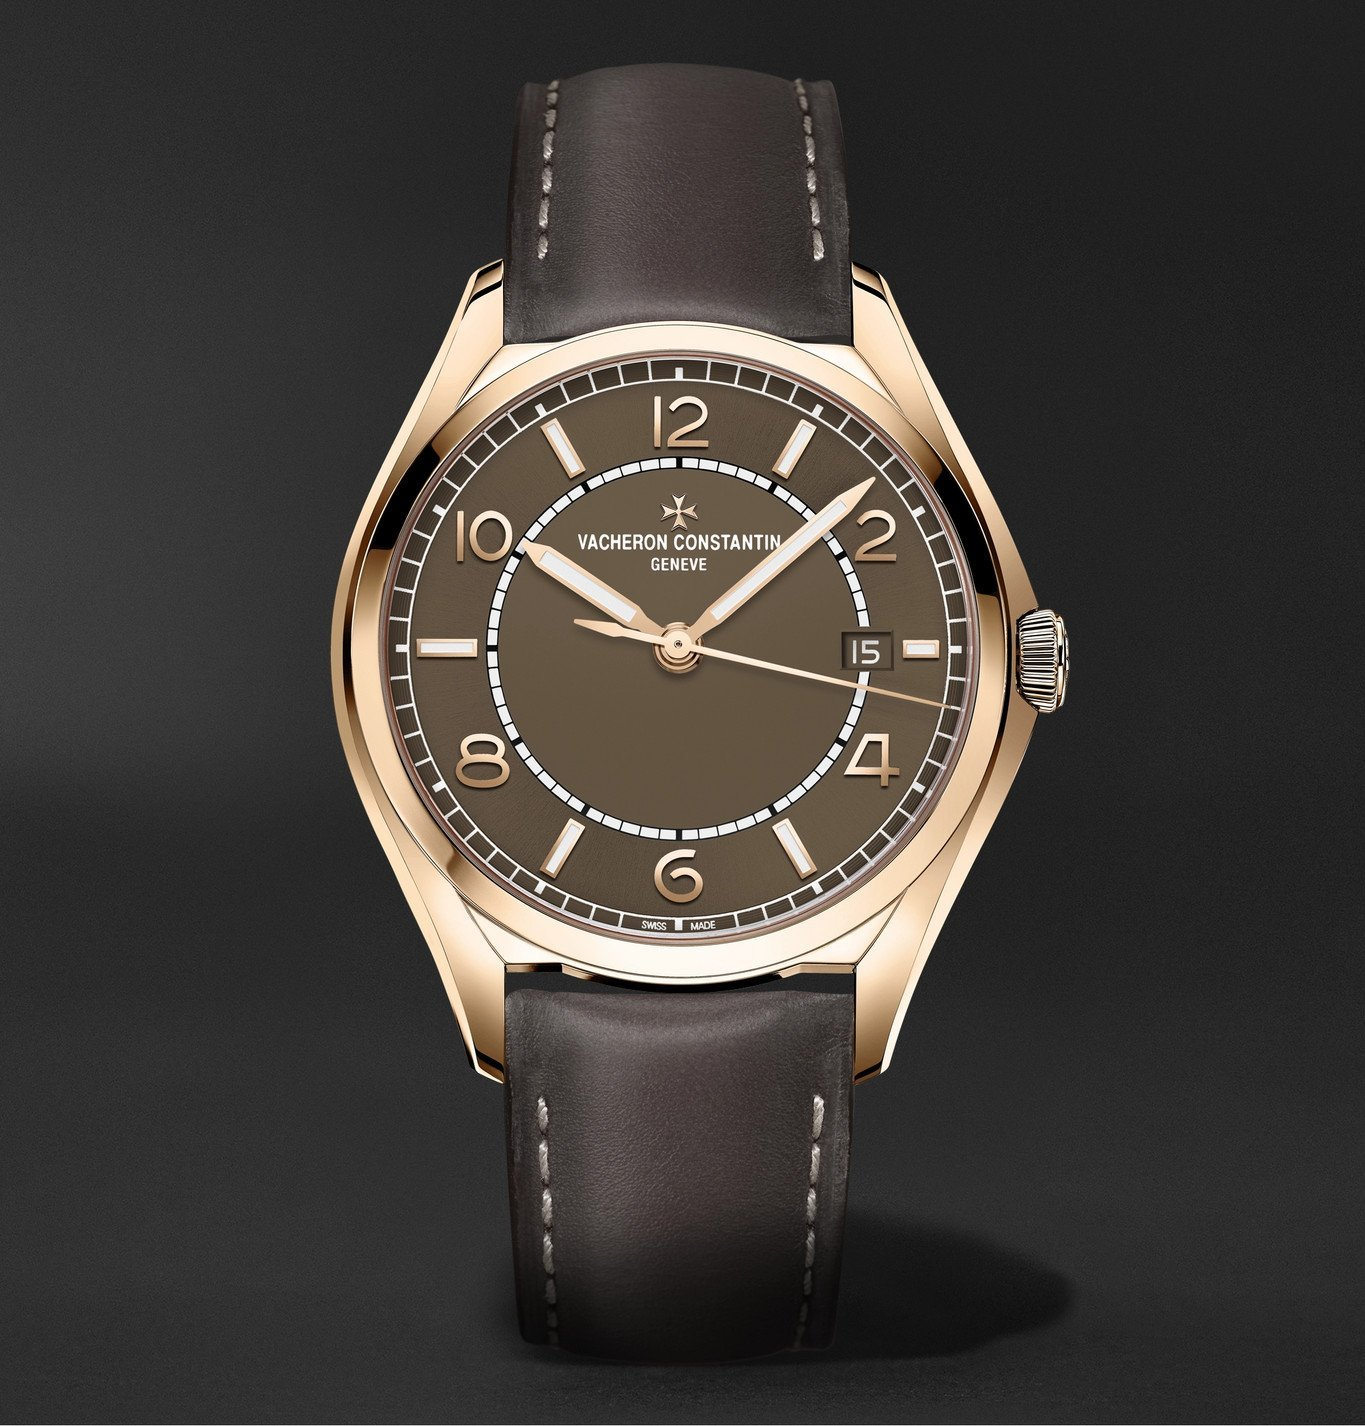 Photo: Vacheron Constantin - Fiftysix Automatic 40mm Pink Gold and Leather Watch, Ref. No. 4600E/000R-B576 - Brown